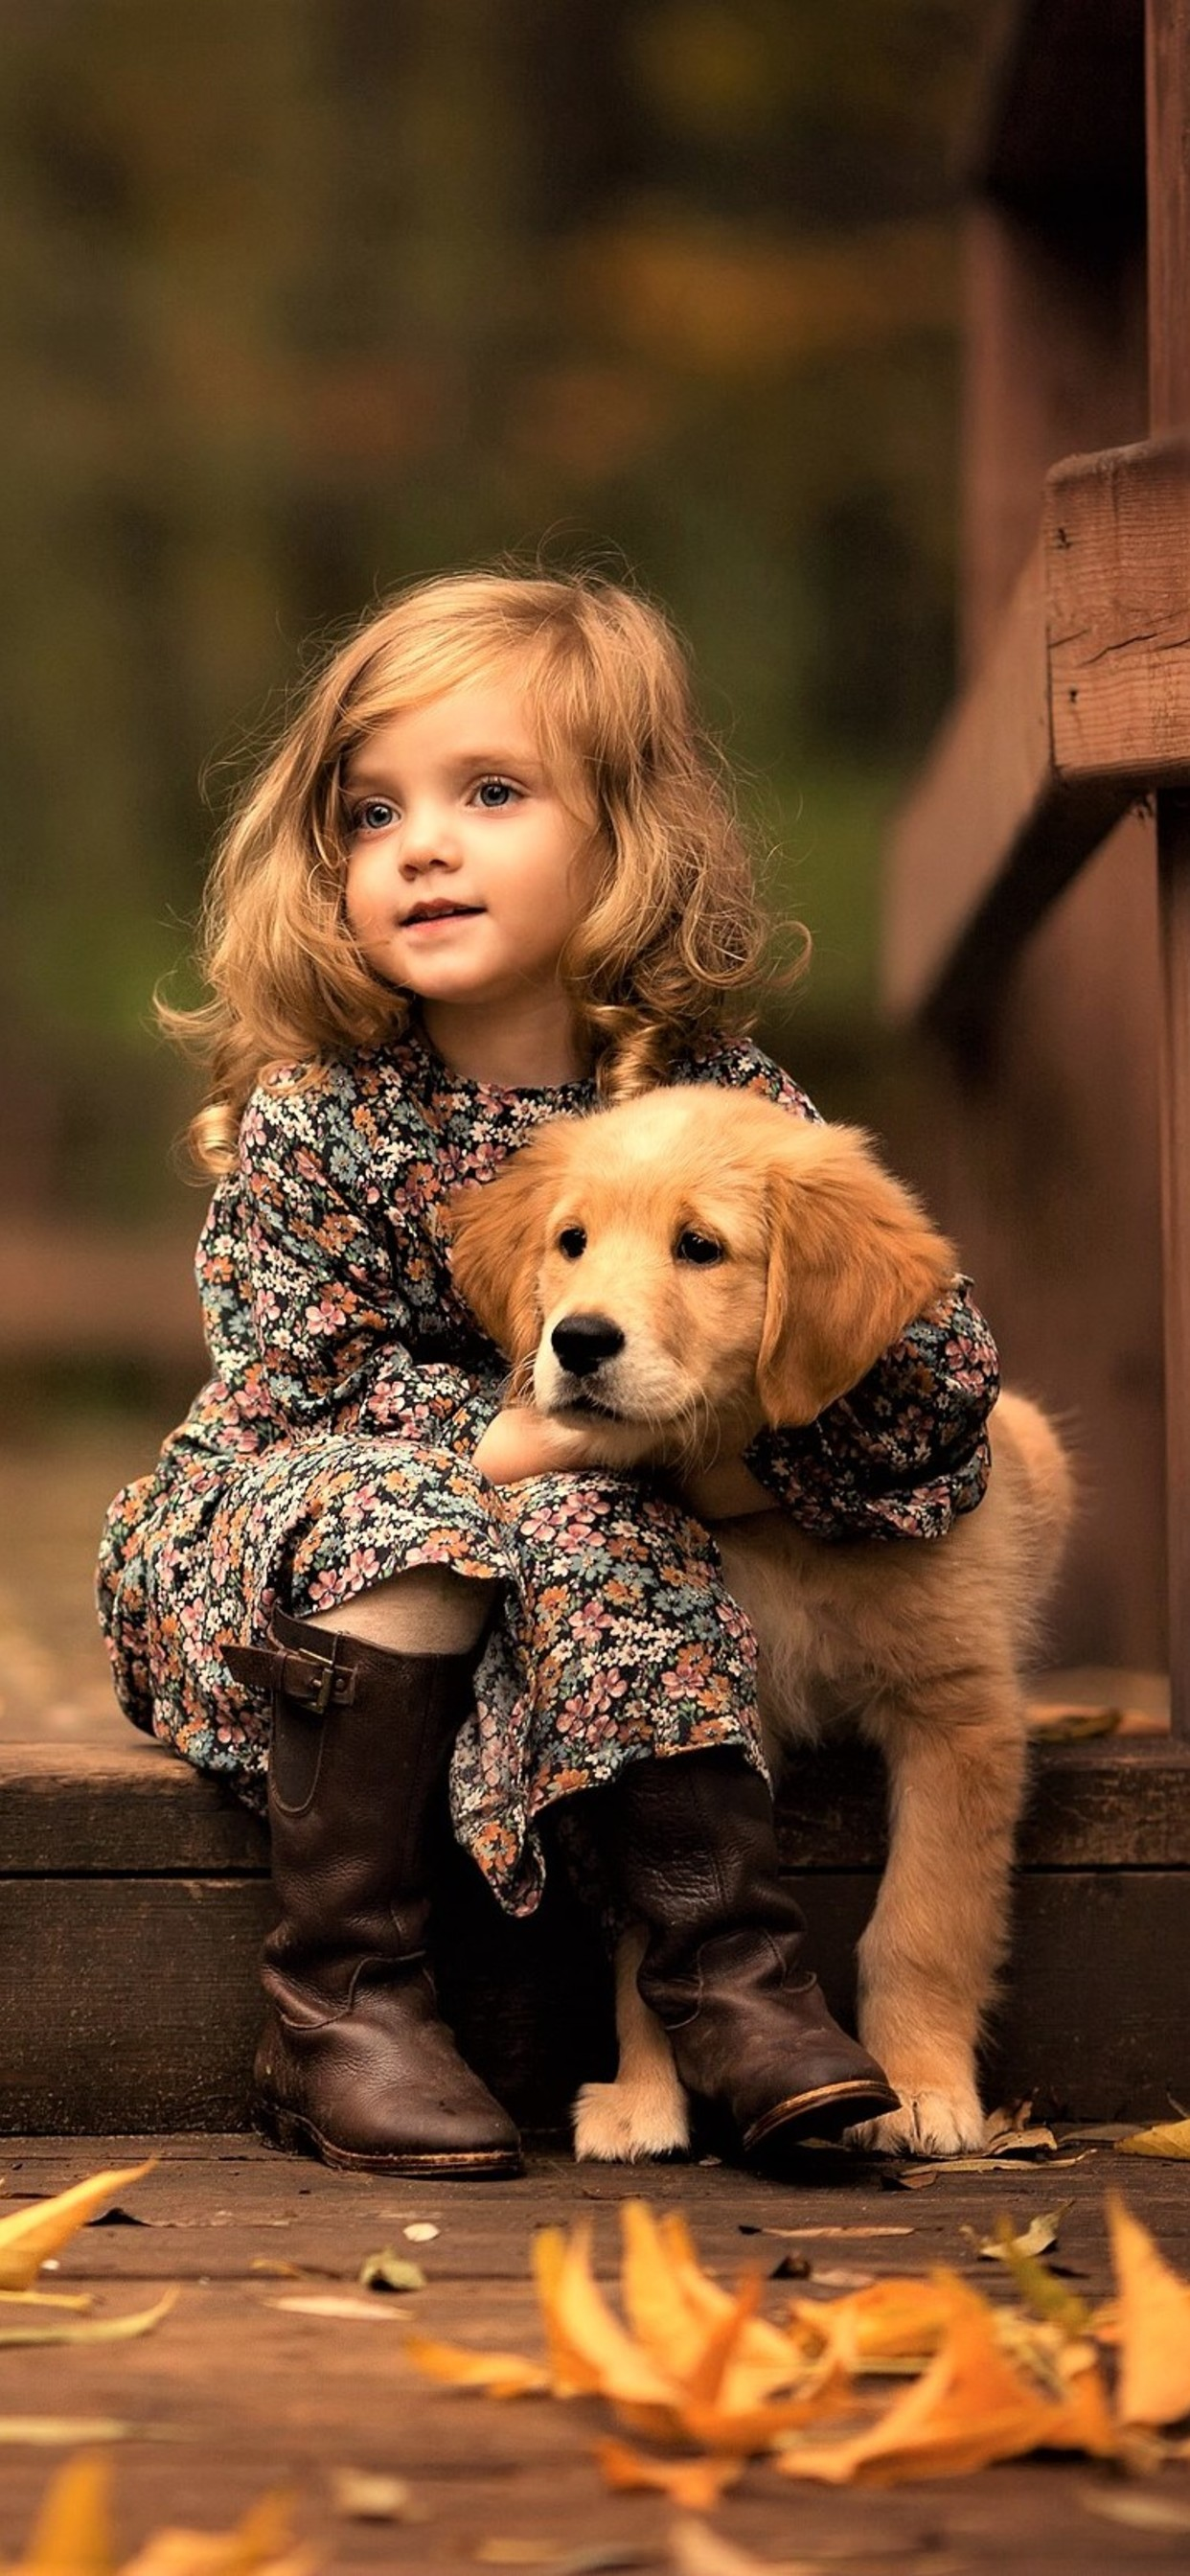 Little Girl With Golden Retriever Puppy Wallpaper 1242x2688